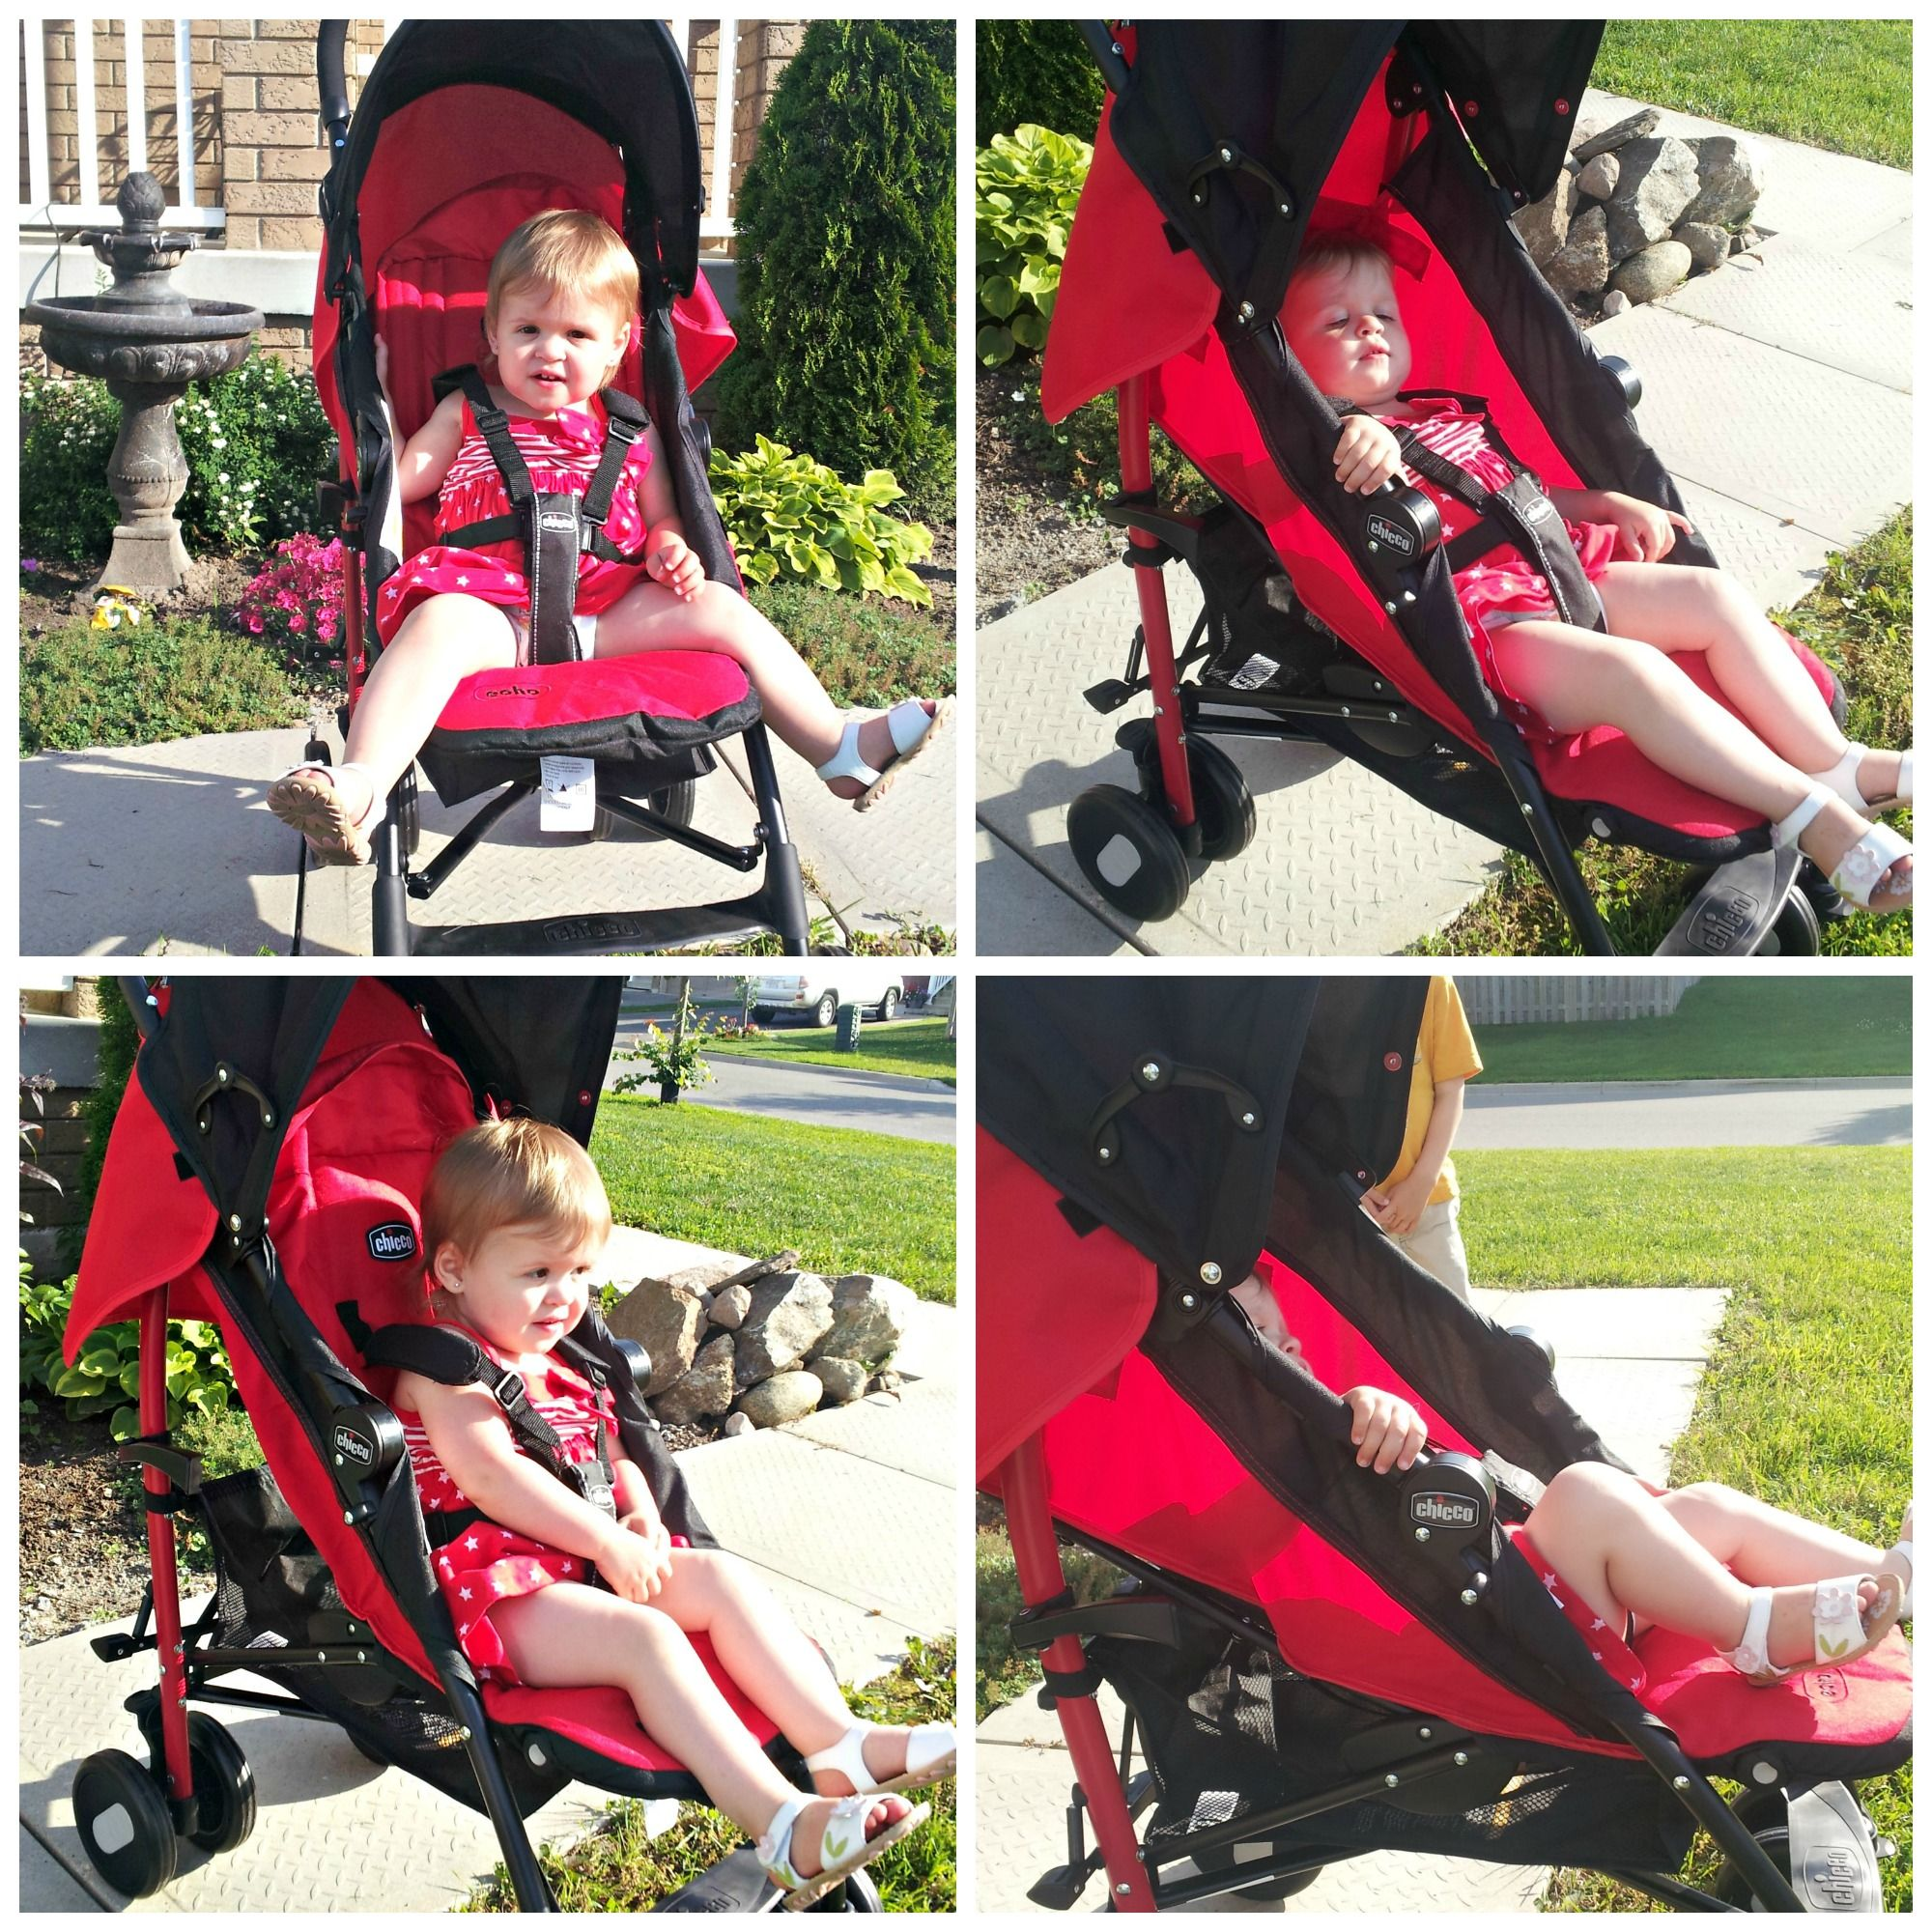 Strolling for a new ride! Chicco Echo Stroller review